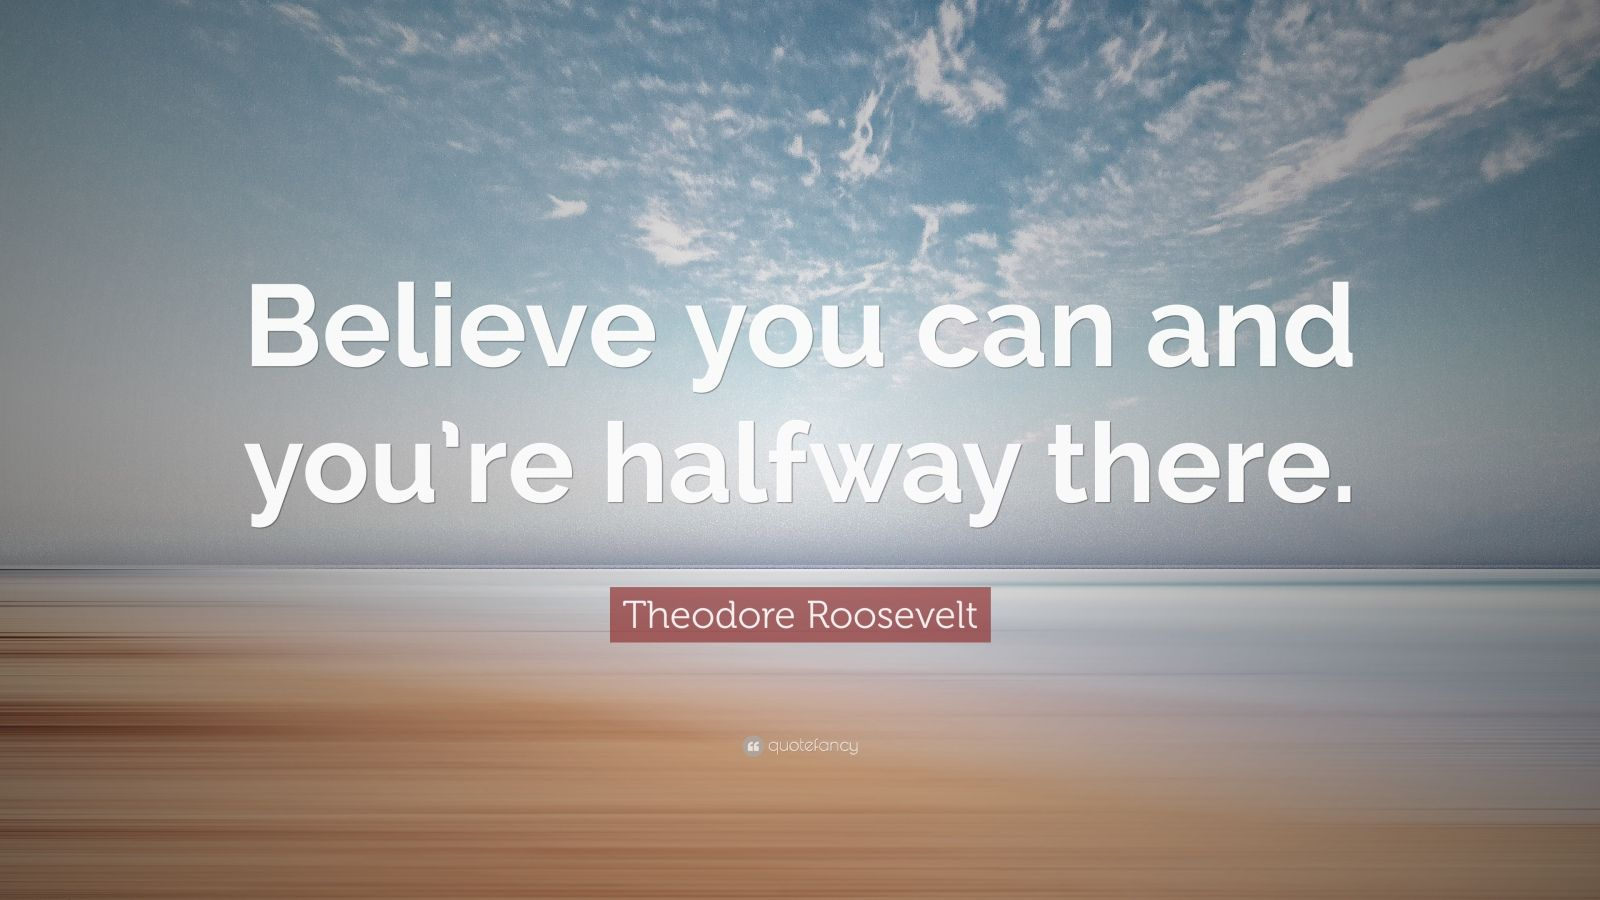 theodore roosevelt quote   u201cbelieve you can and you u2019re